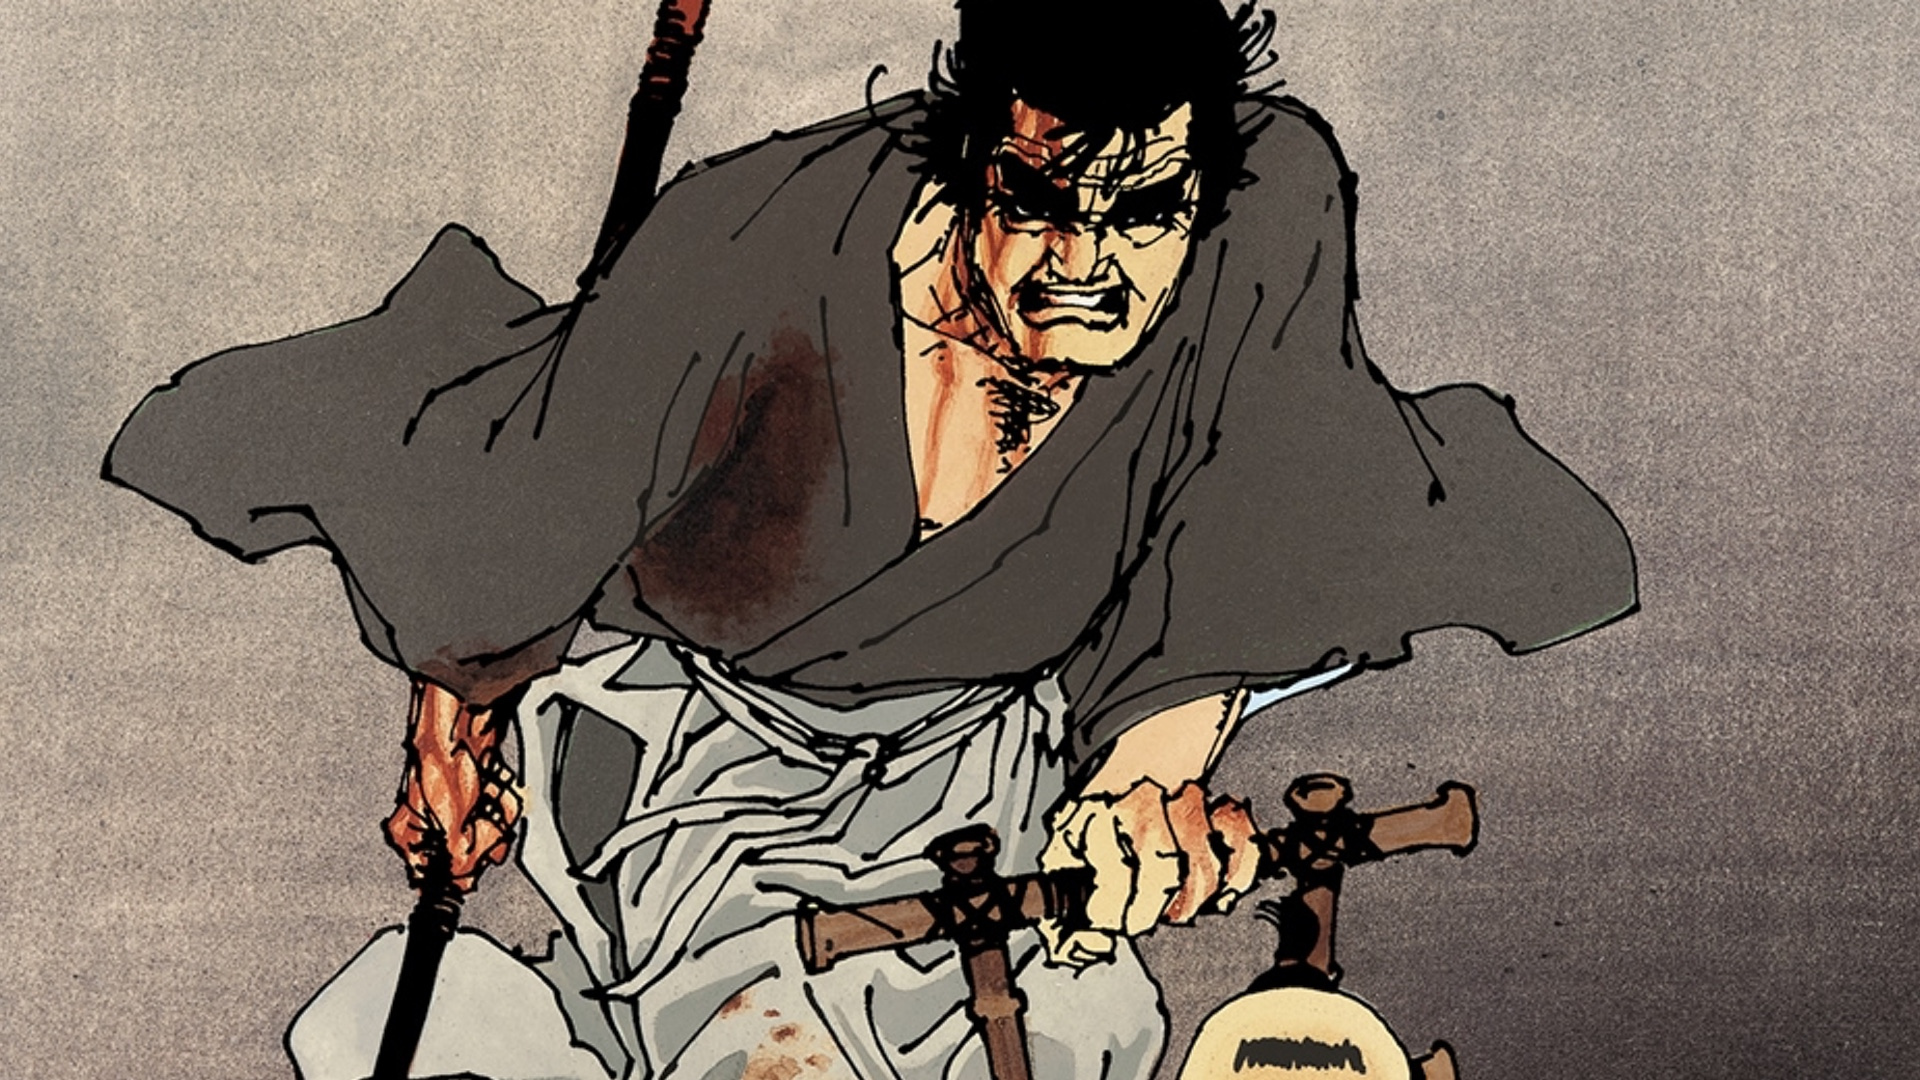 The Classic Shogun Manga Lone Wolf And Cub Will Be Adapted By